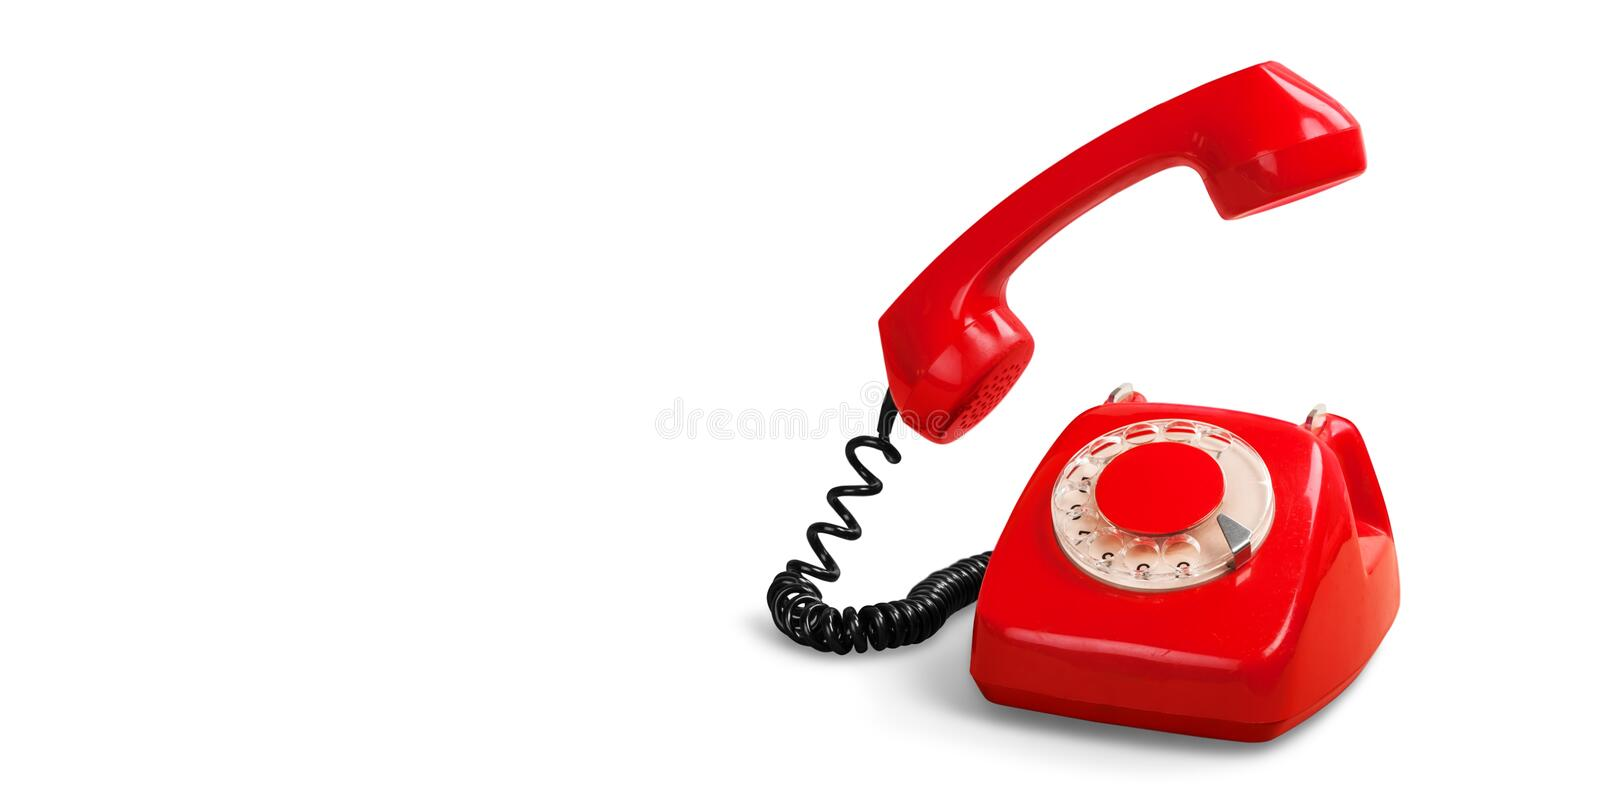 Retro red telephone. Red retro phone telephone call center contact us mint green stock images